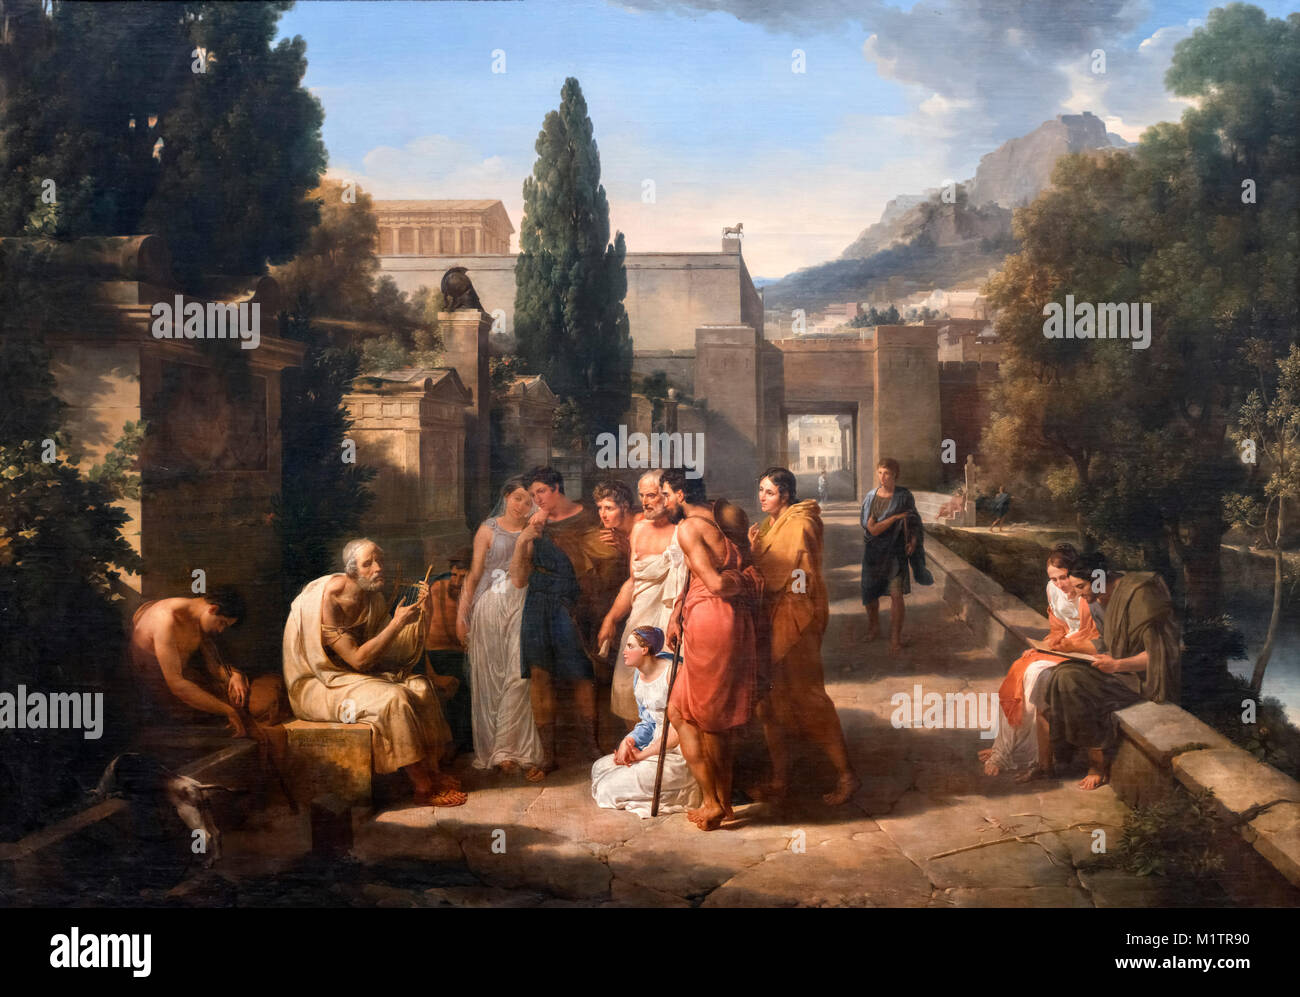 Homer Singing His Iliad at the Gate of Athens by Guillaume Lethiere (1760-1832), oil on canvas, 1811. - Stock Image